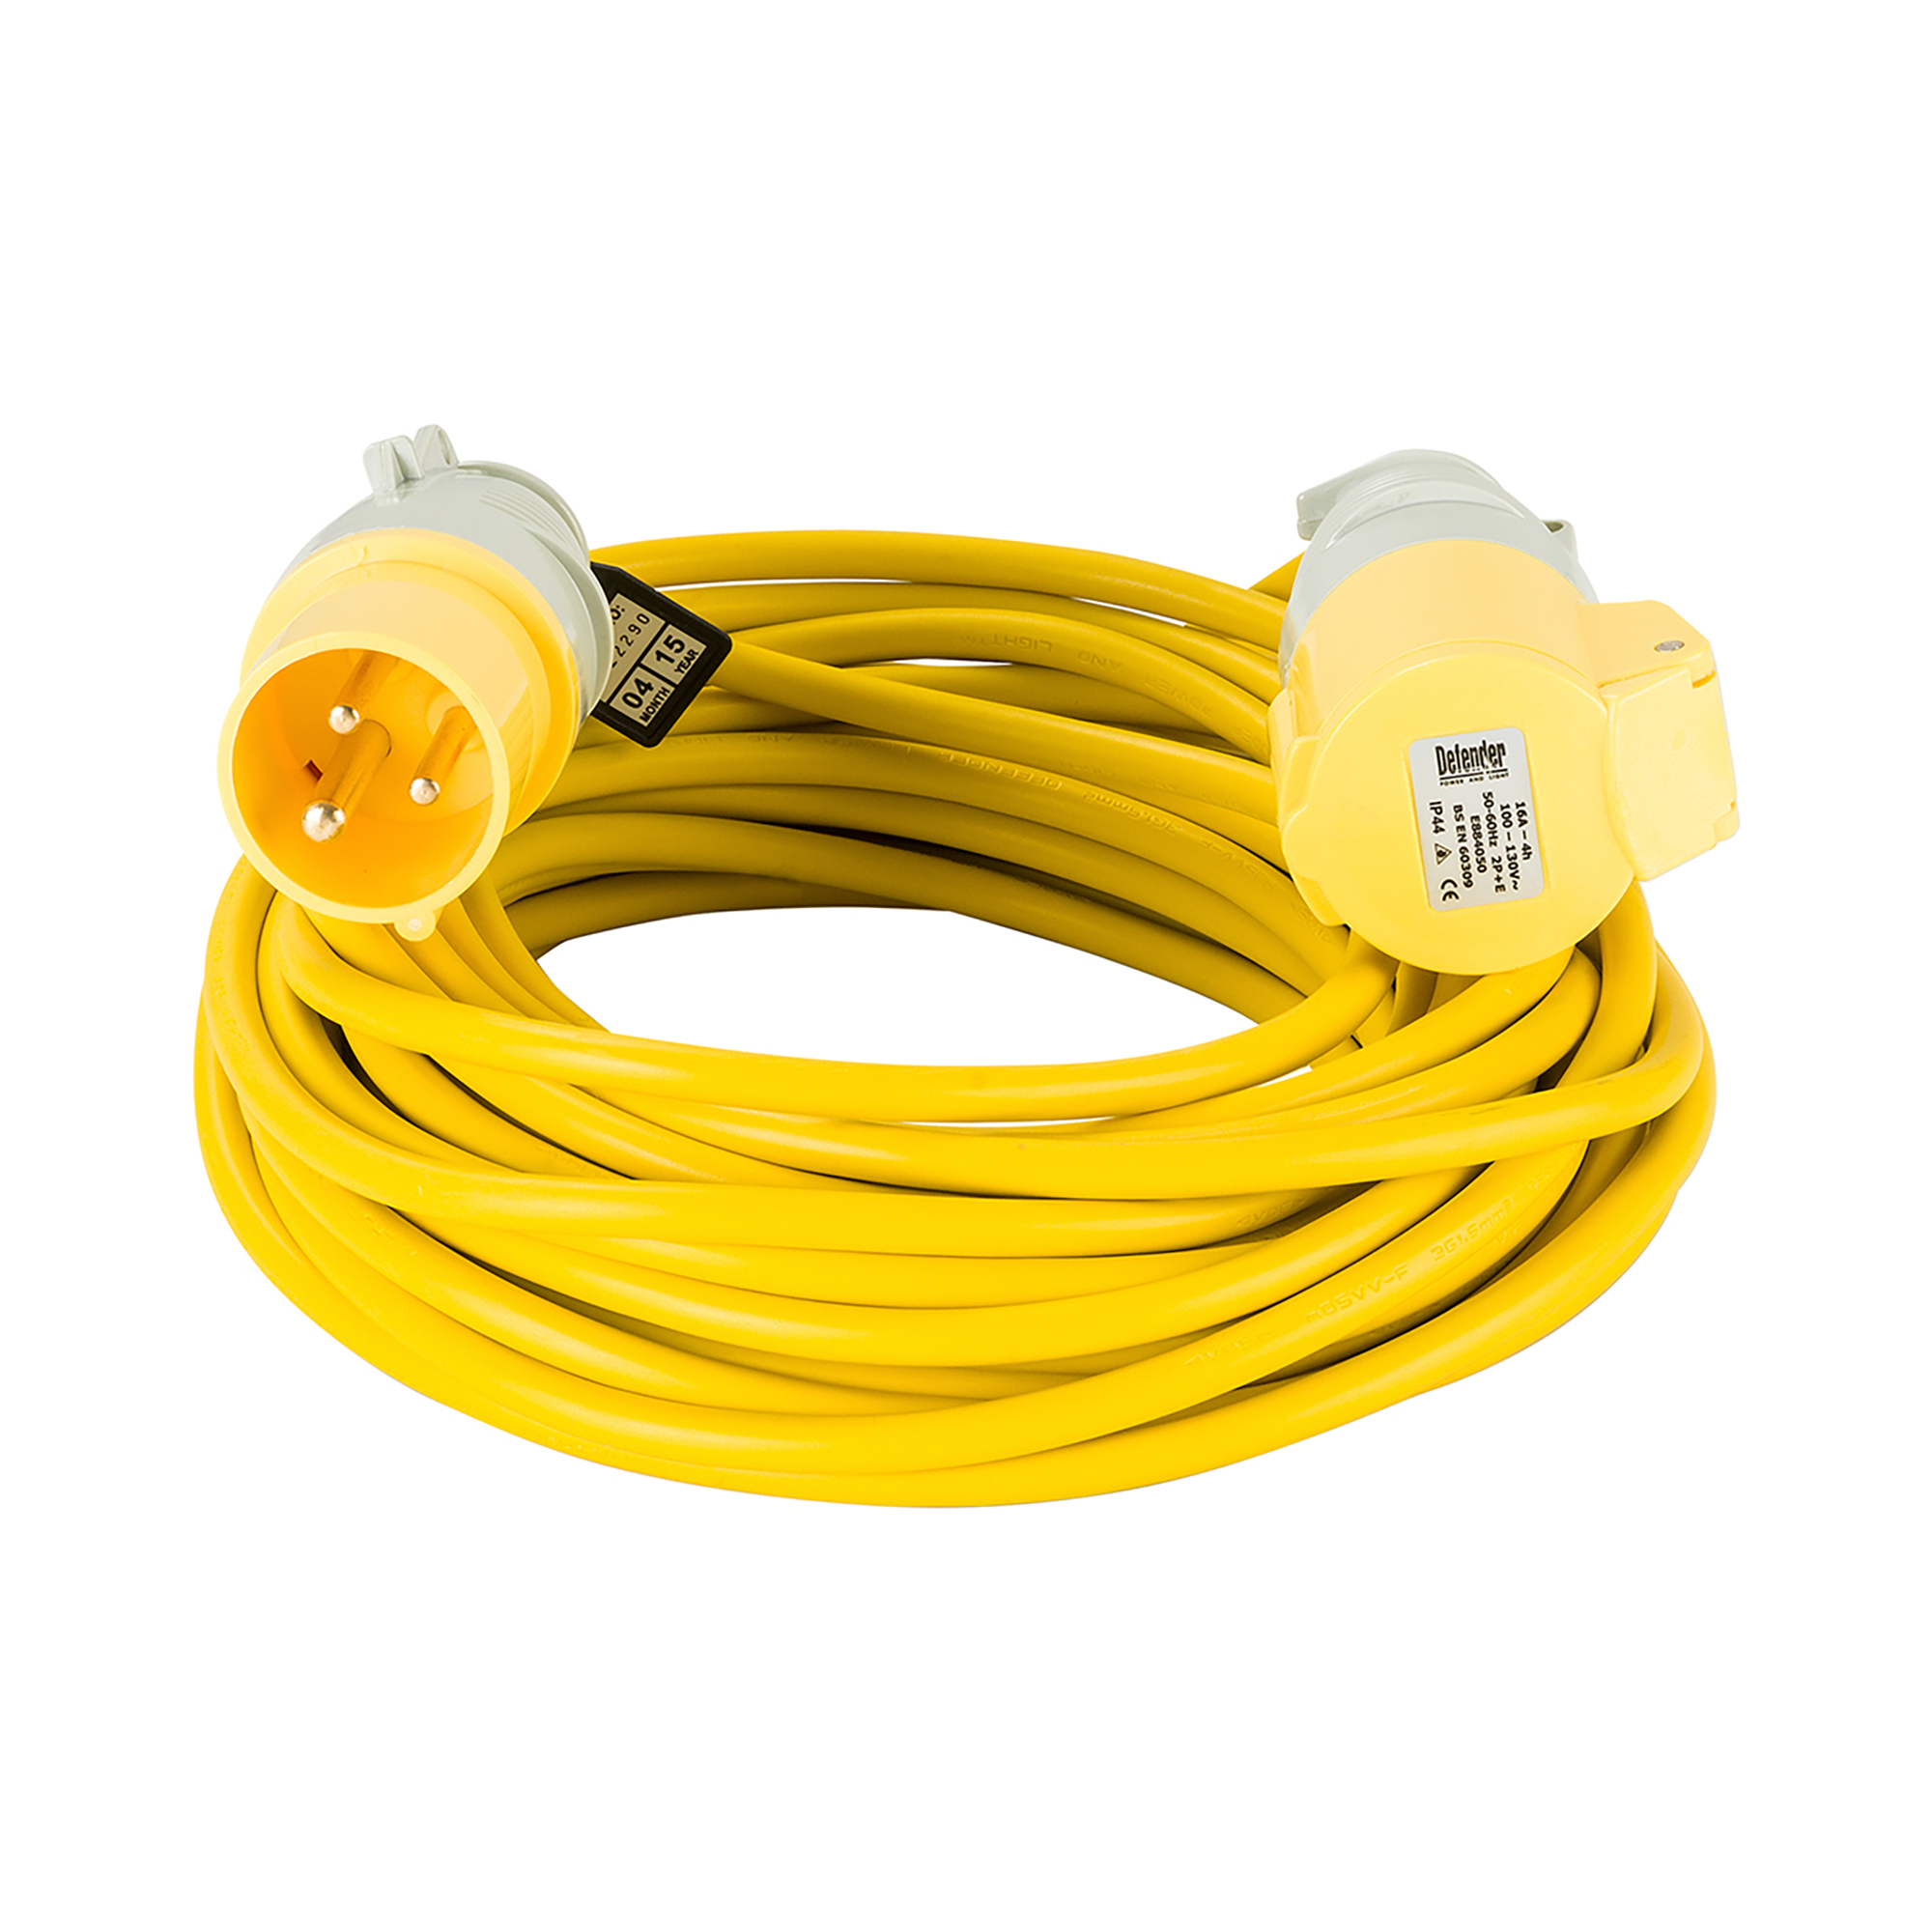 Yellow Defender 14M 2.5mm 16A arctic grade 110V extension lead cable with Defender plug and coupler, on a white background